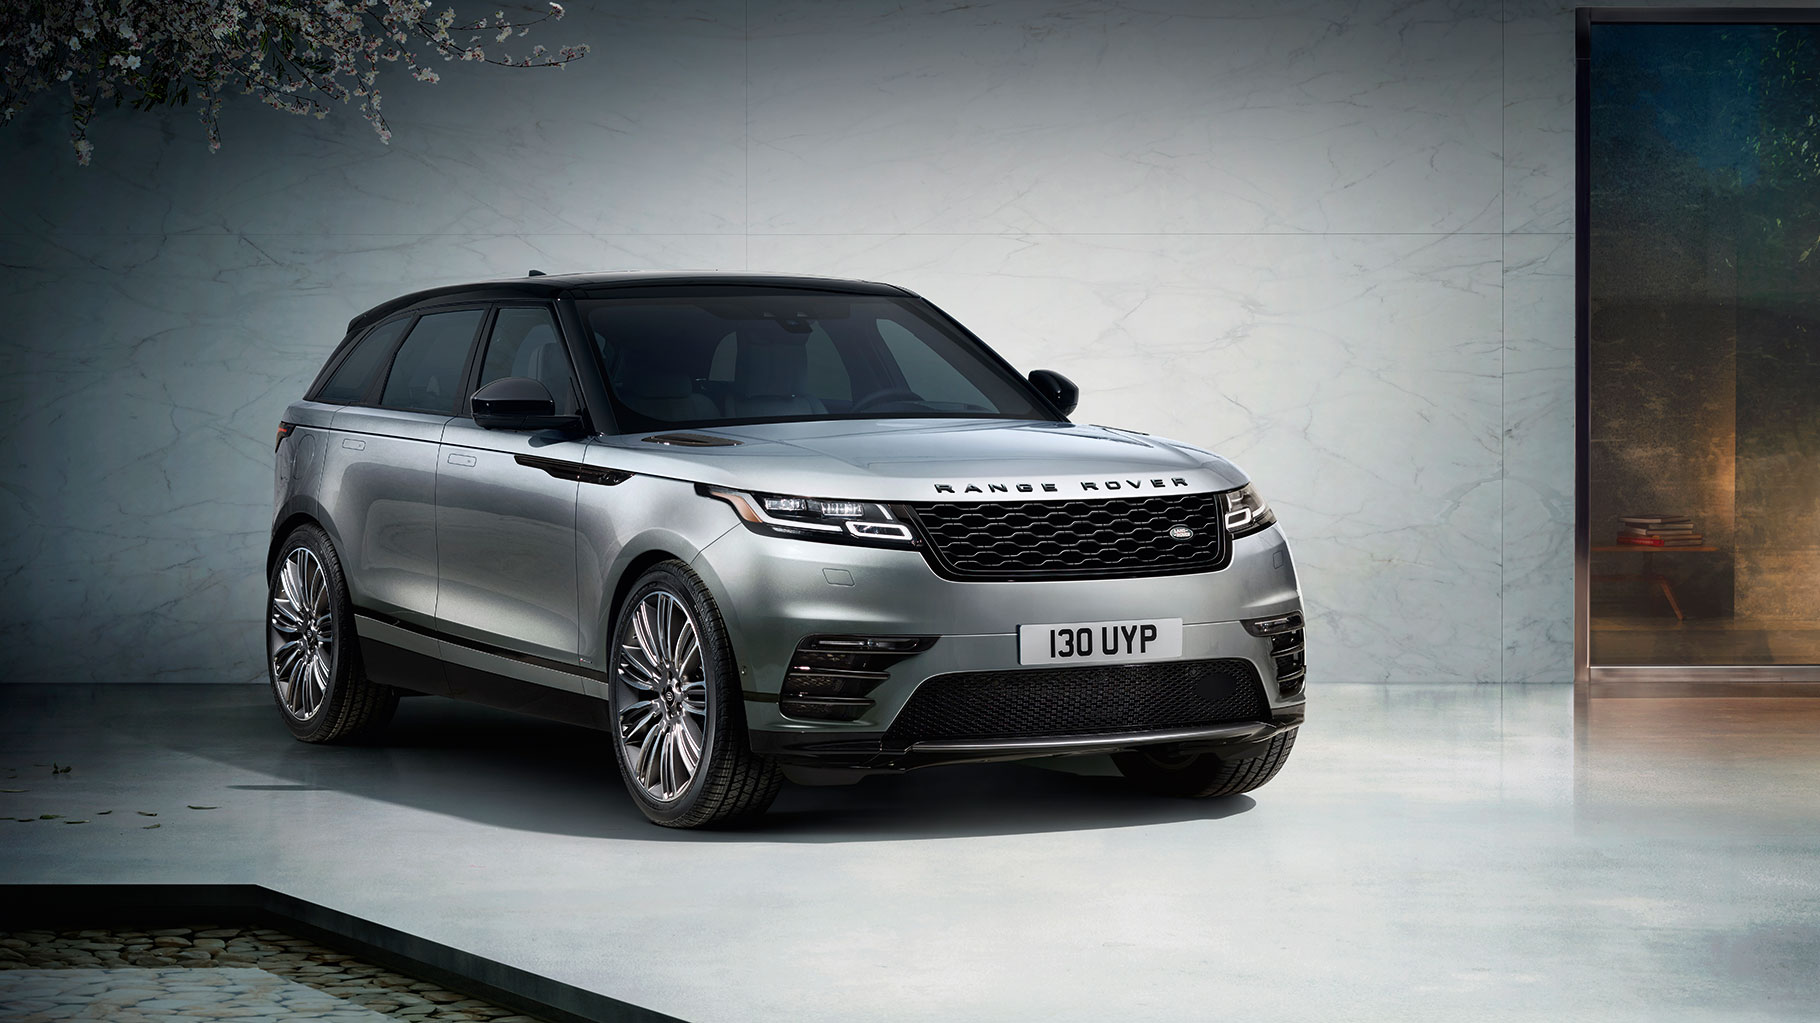 2018 range rover velar for sale chicago il new range rover velar in naperville il. Black Bedroom Furniture Sets. Home Design Ideas